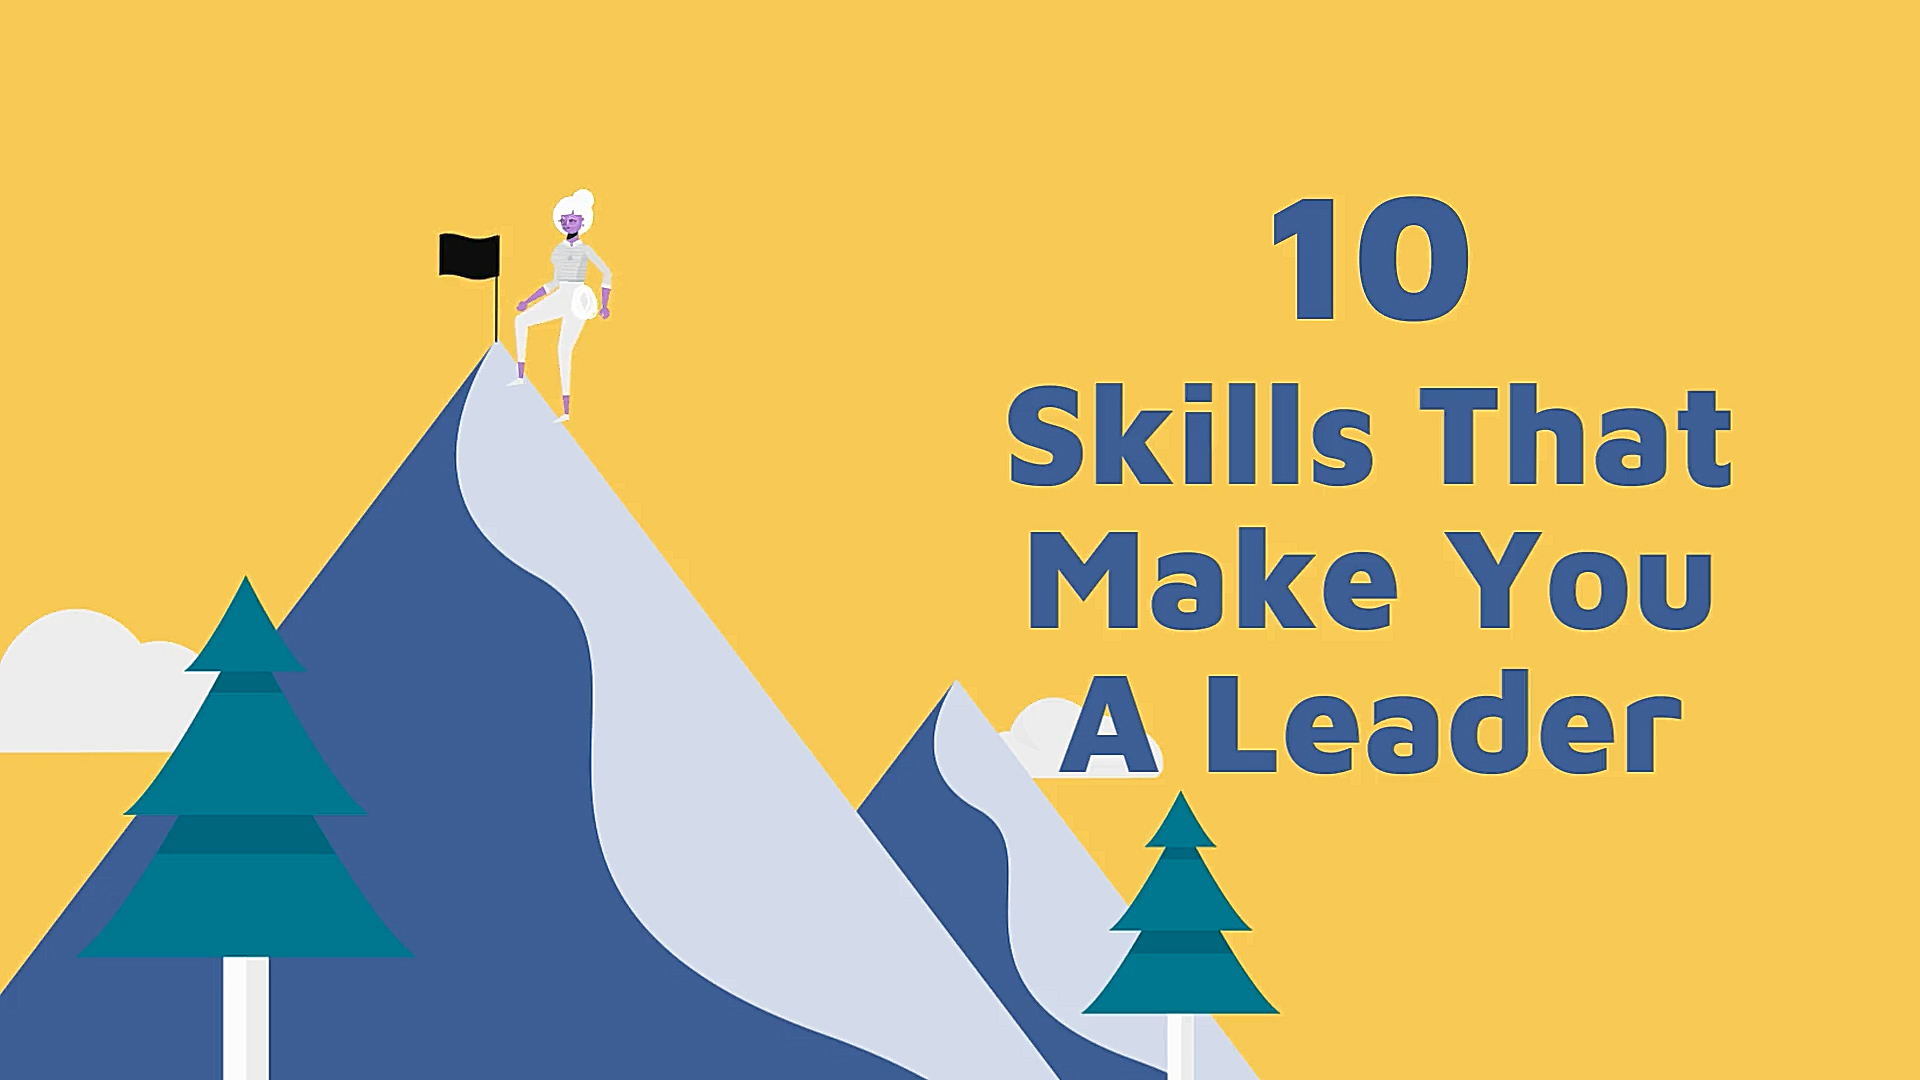 10 Skills That Make You A Leader